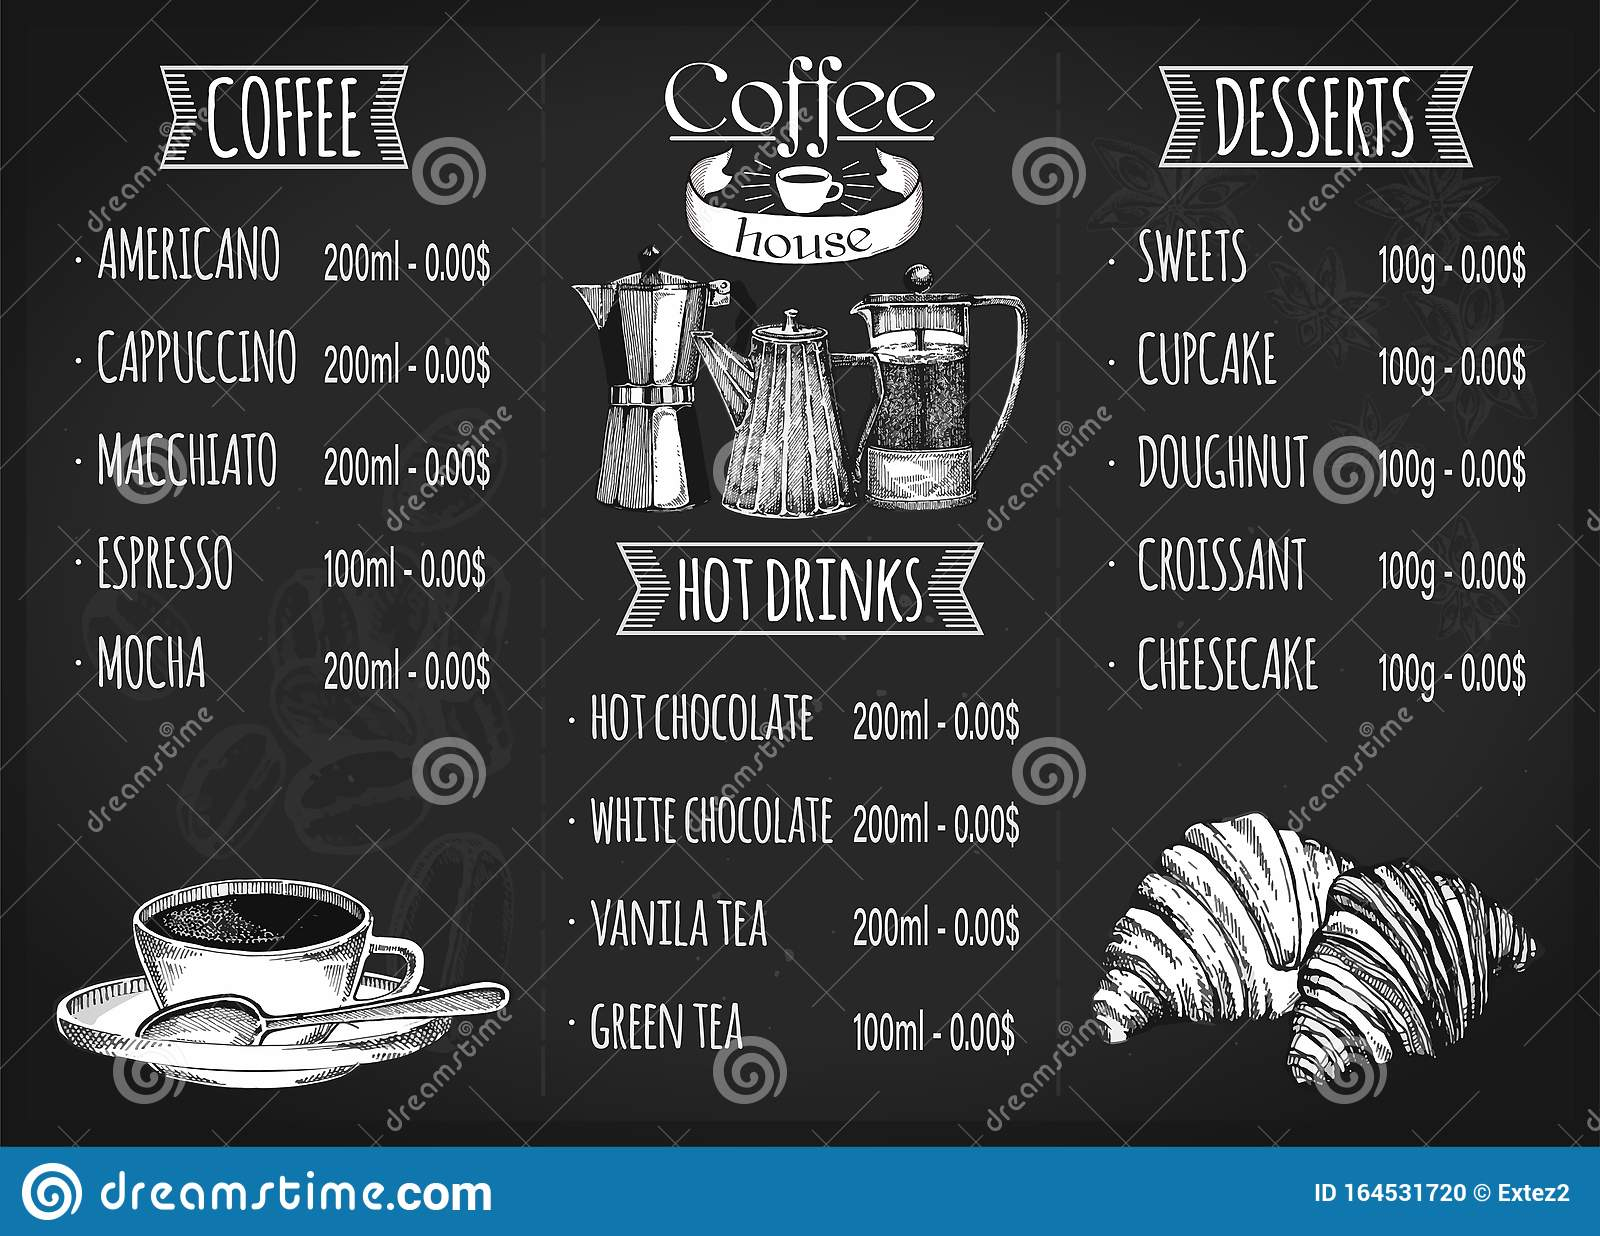 Restaurant Menu Design Coffee Restaurant Brochure Vector Coffee Shop Menu Design Stock Vector Illustration Of Chef Label 164531720